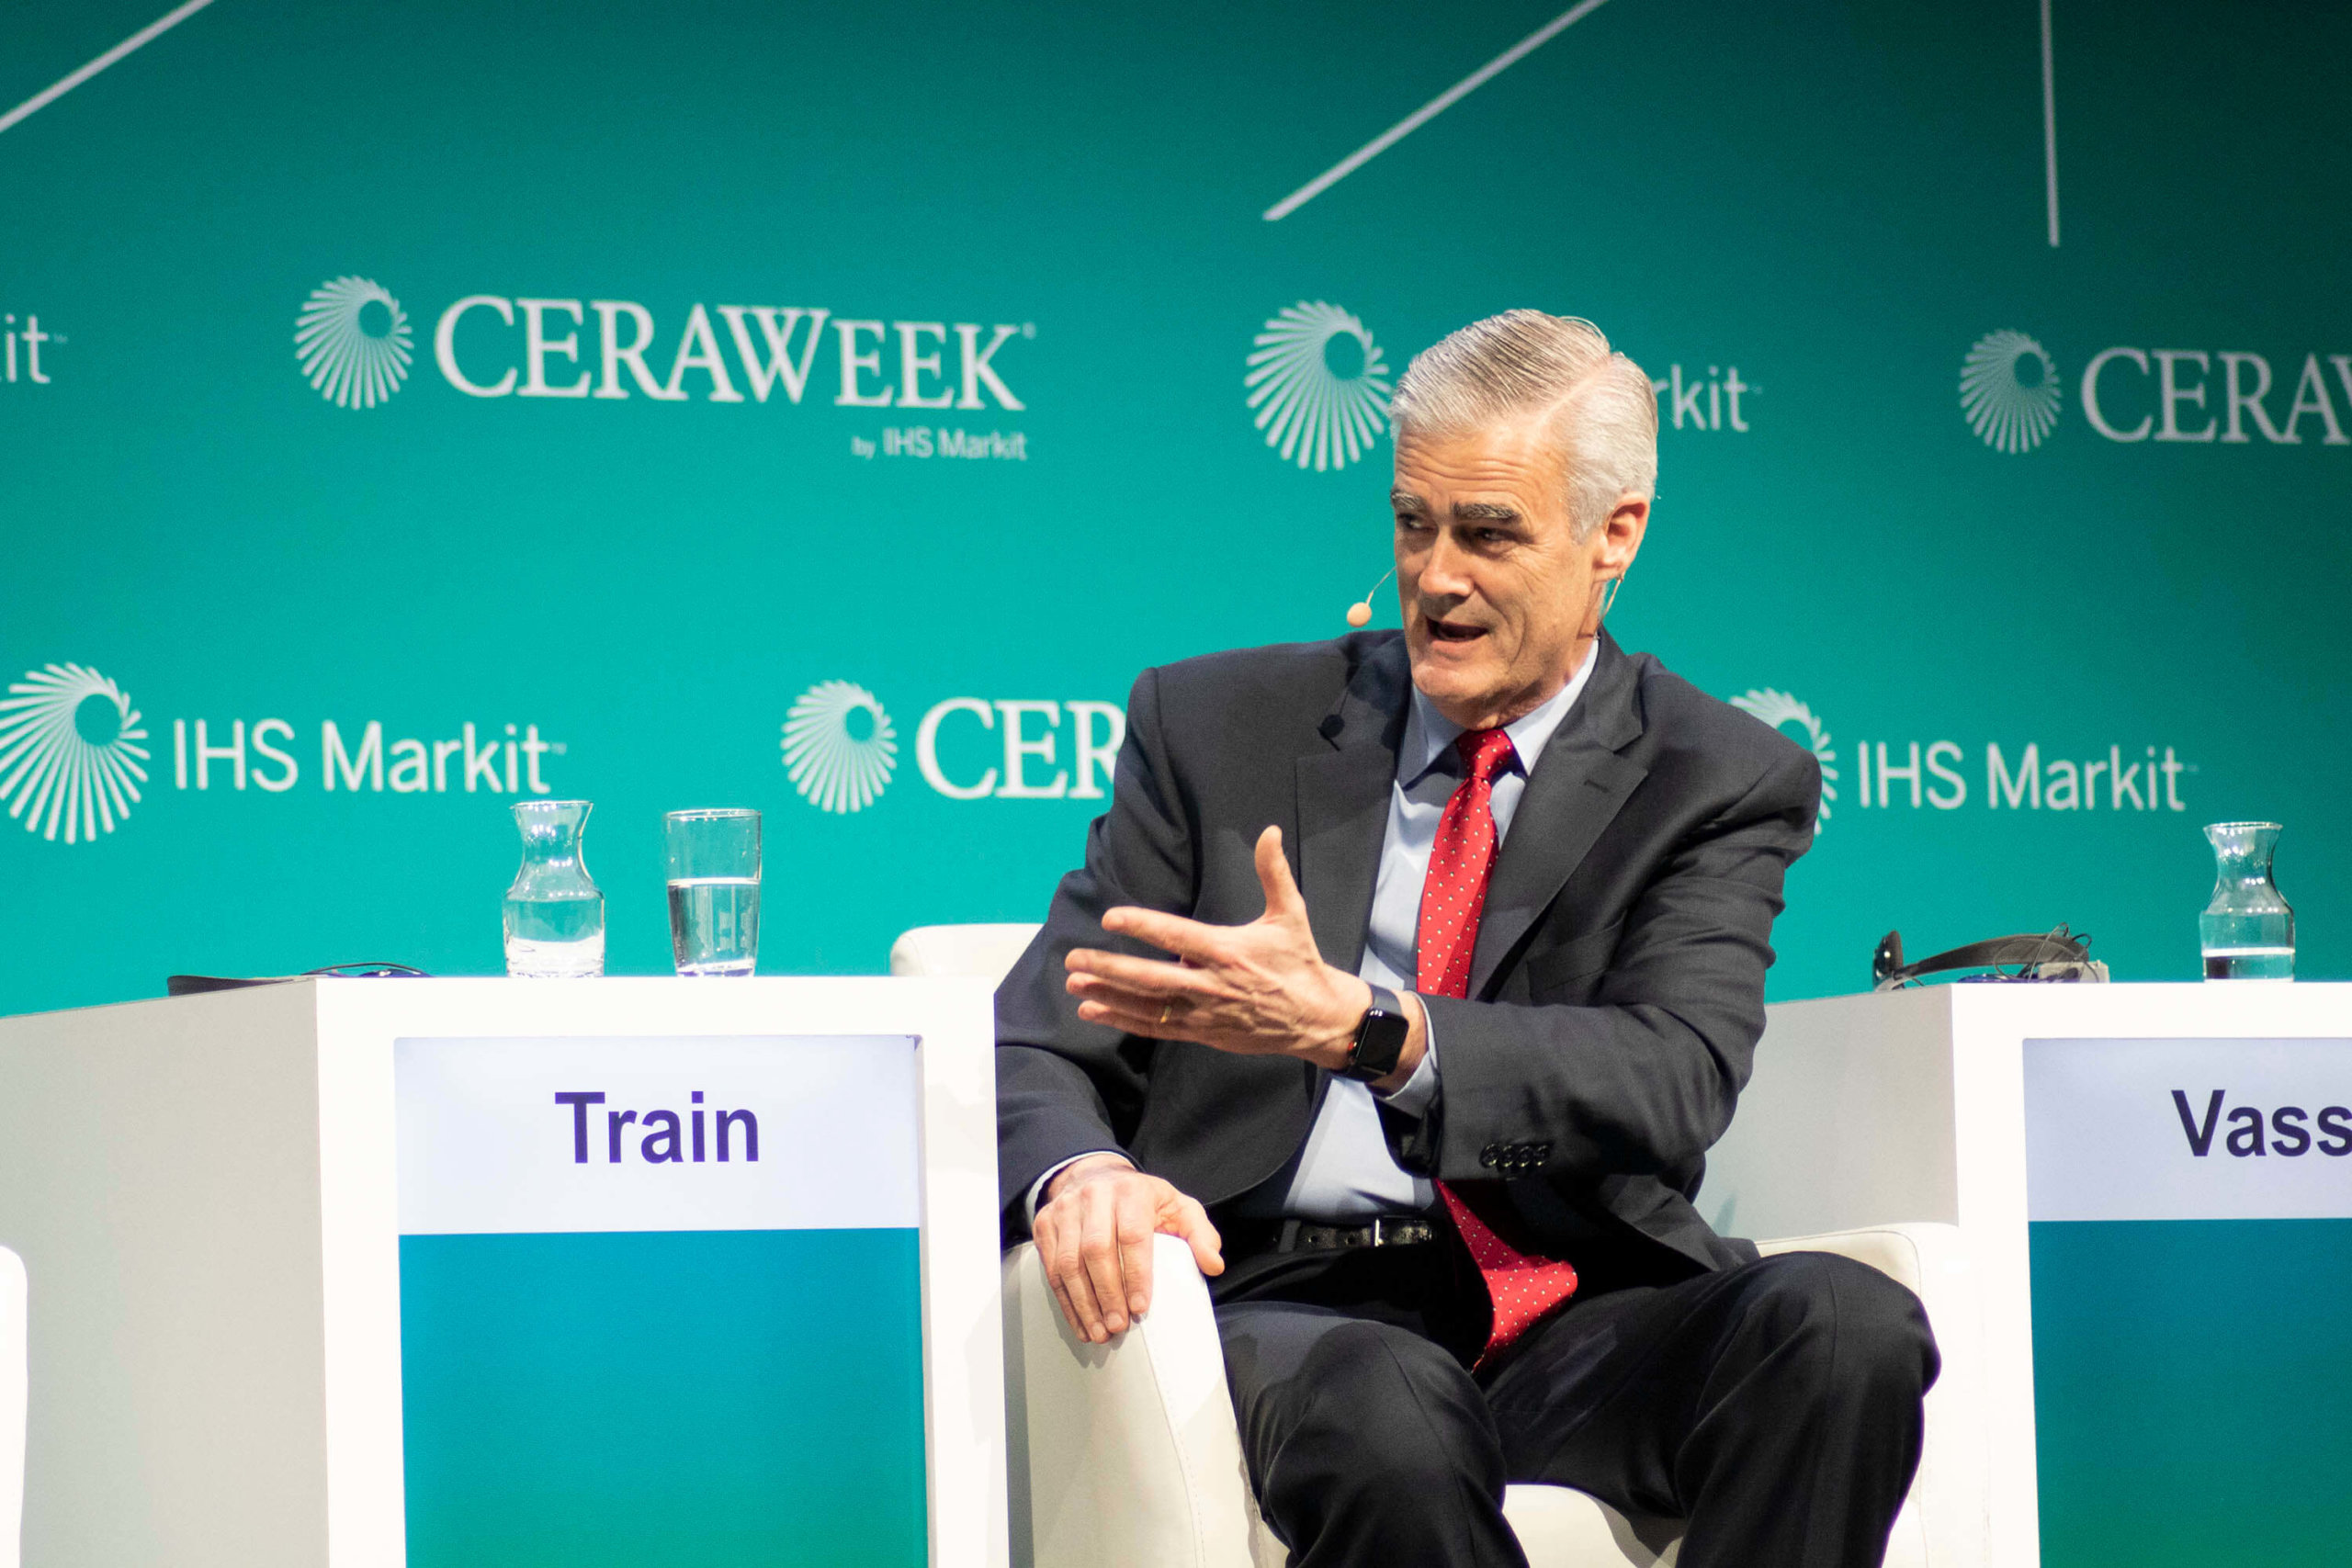 Emerson's Mike Train on extracting value from technology at CERAWeek 2019